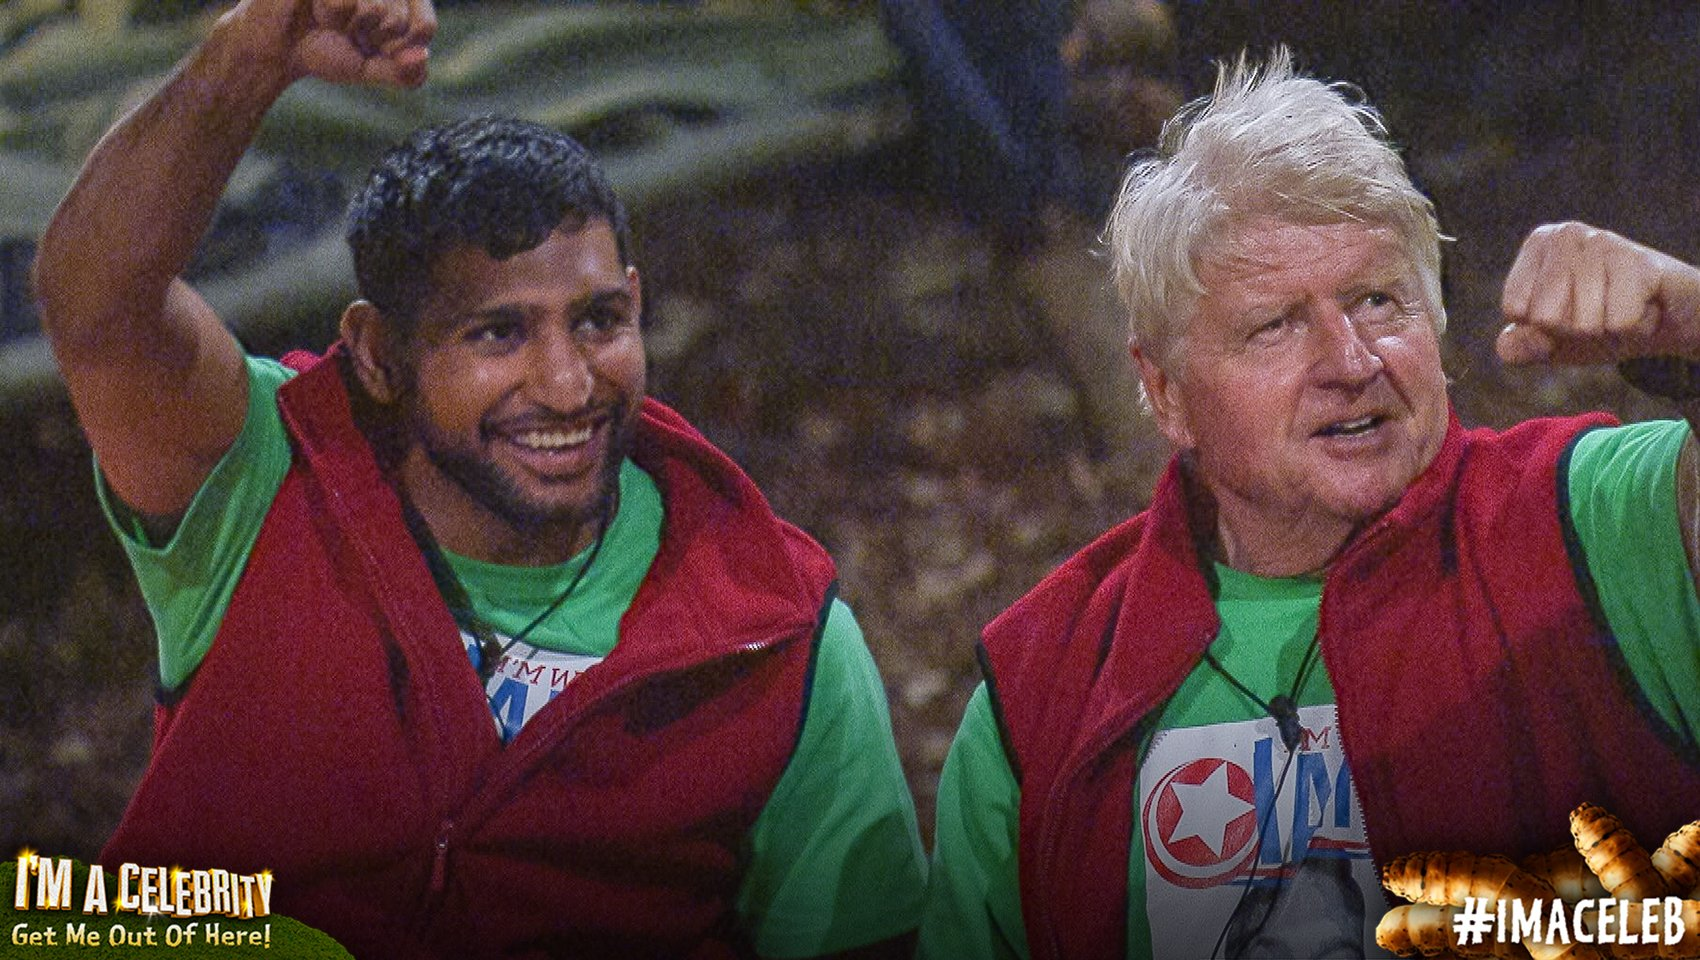 Stanley Johnson and Amir Khan on I'm a Celebrity 2017